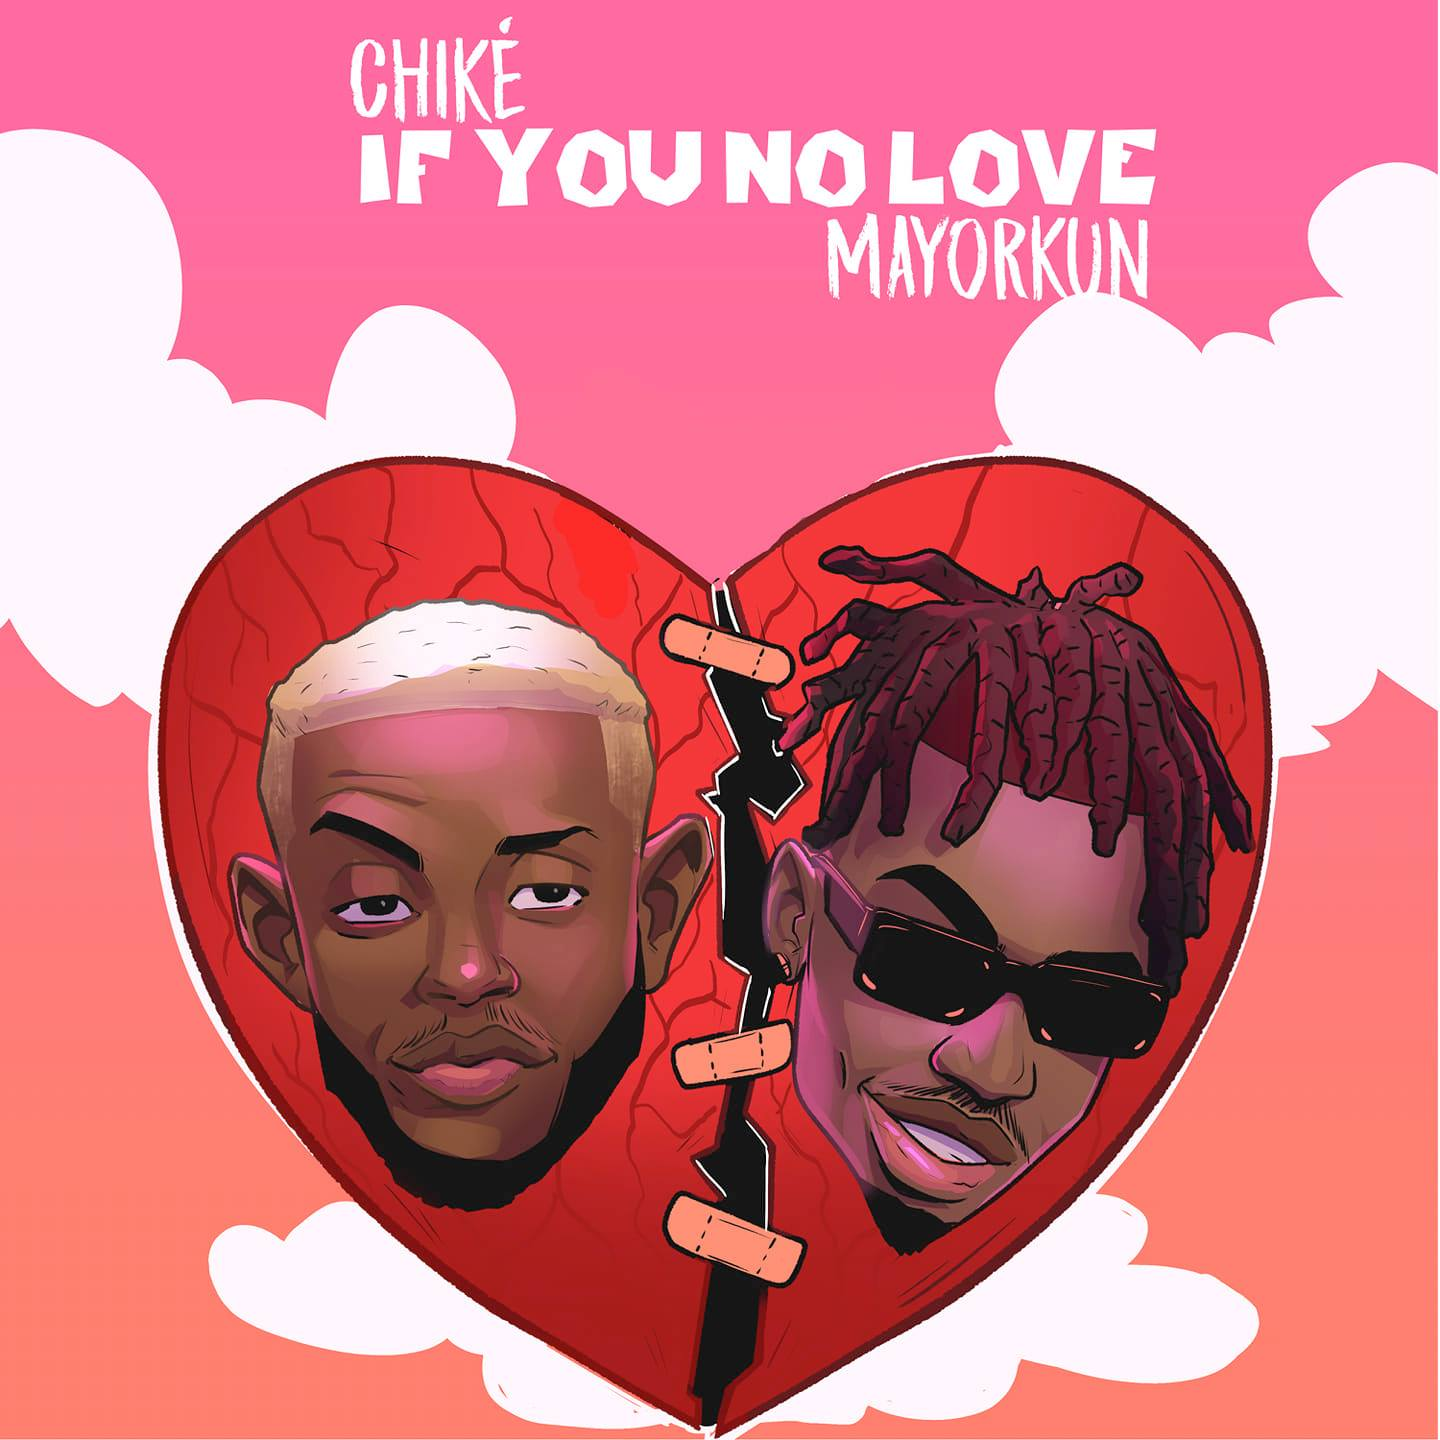 CHIKE Ft MAYORKUN – If You No Love Lyrics